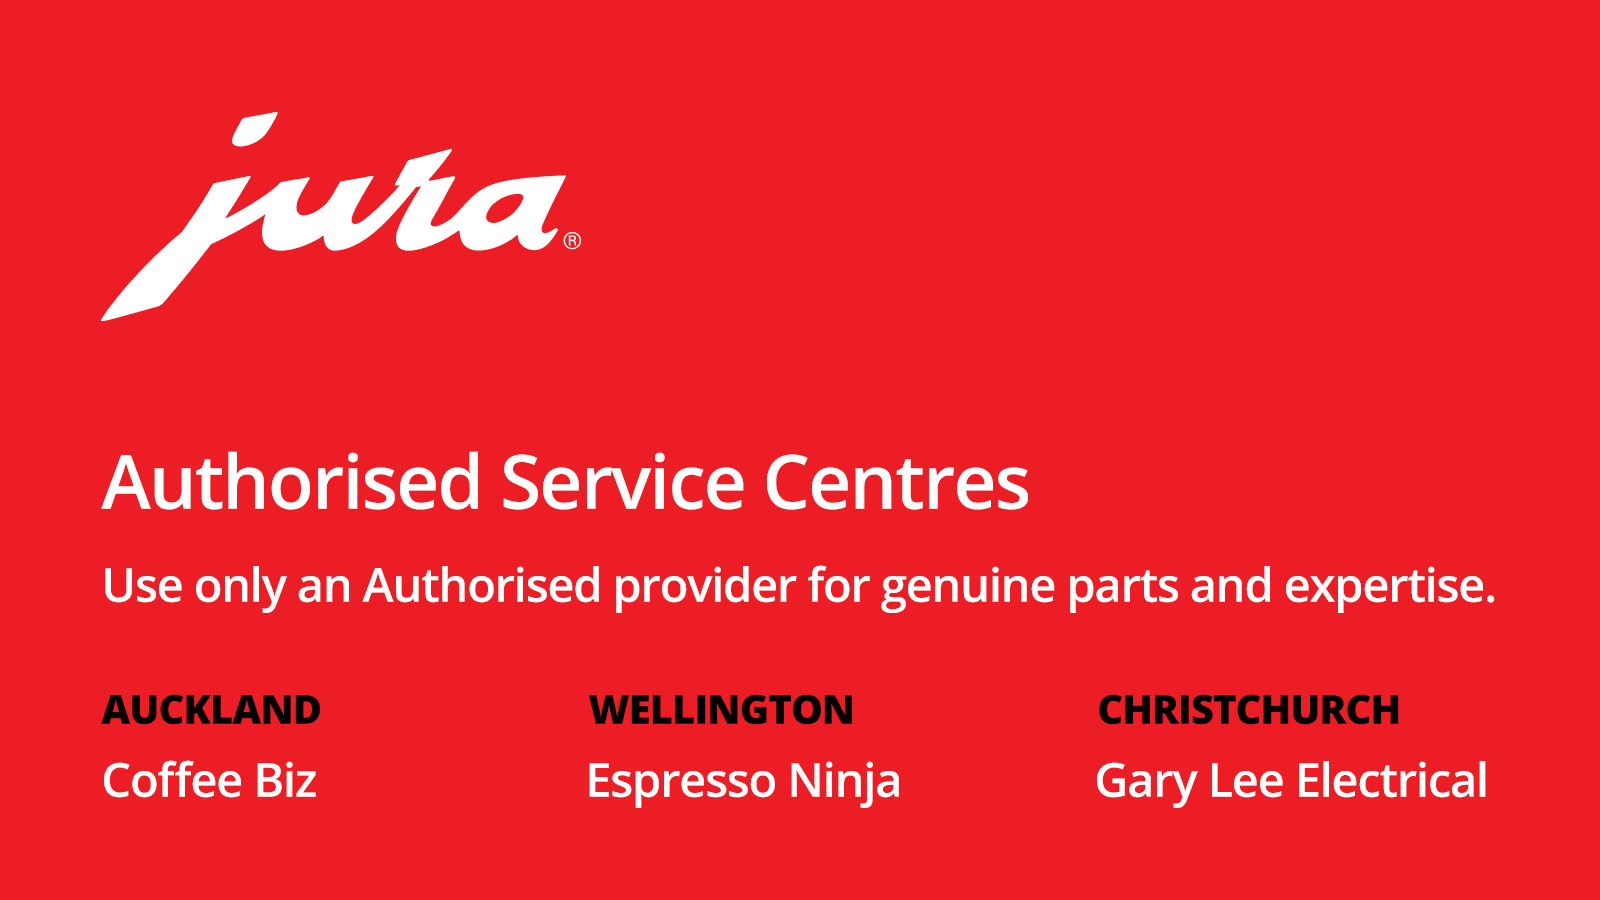 jura authorised service centres